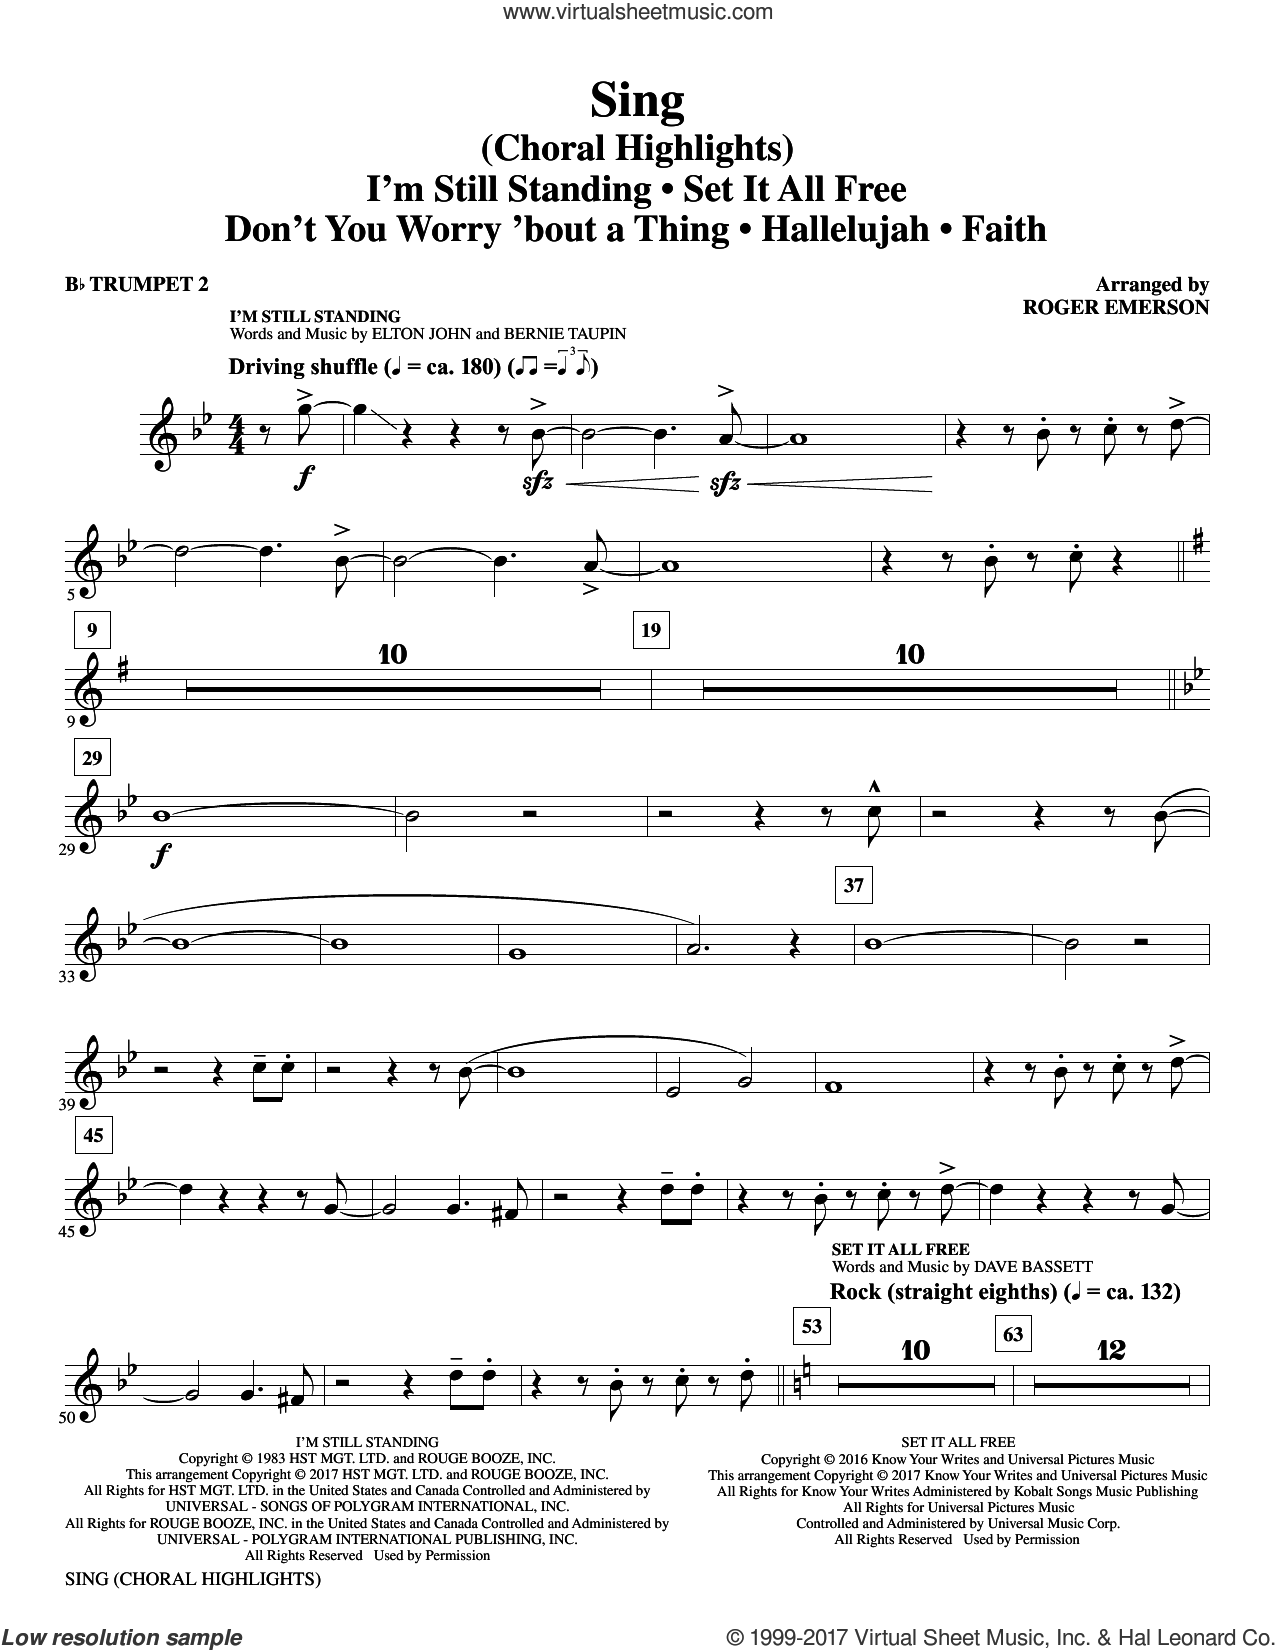 Sing (Choral Highlights) sheet music for orchestra/band (Bb trumpet 2) by Leonard Cohen, Roger Emerson, Justin Timberlake & Matt Morris featuring Charlie Sexton and Lee DeWyze, intermediate skill level